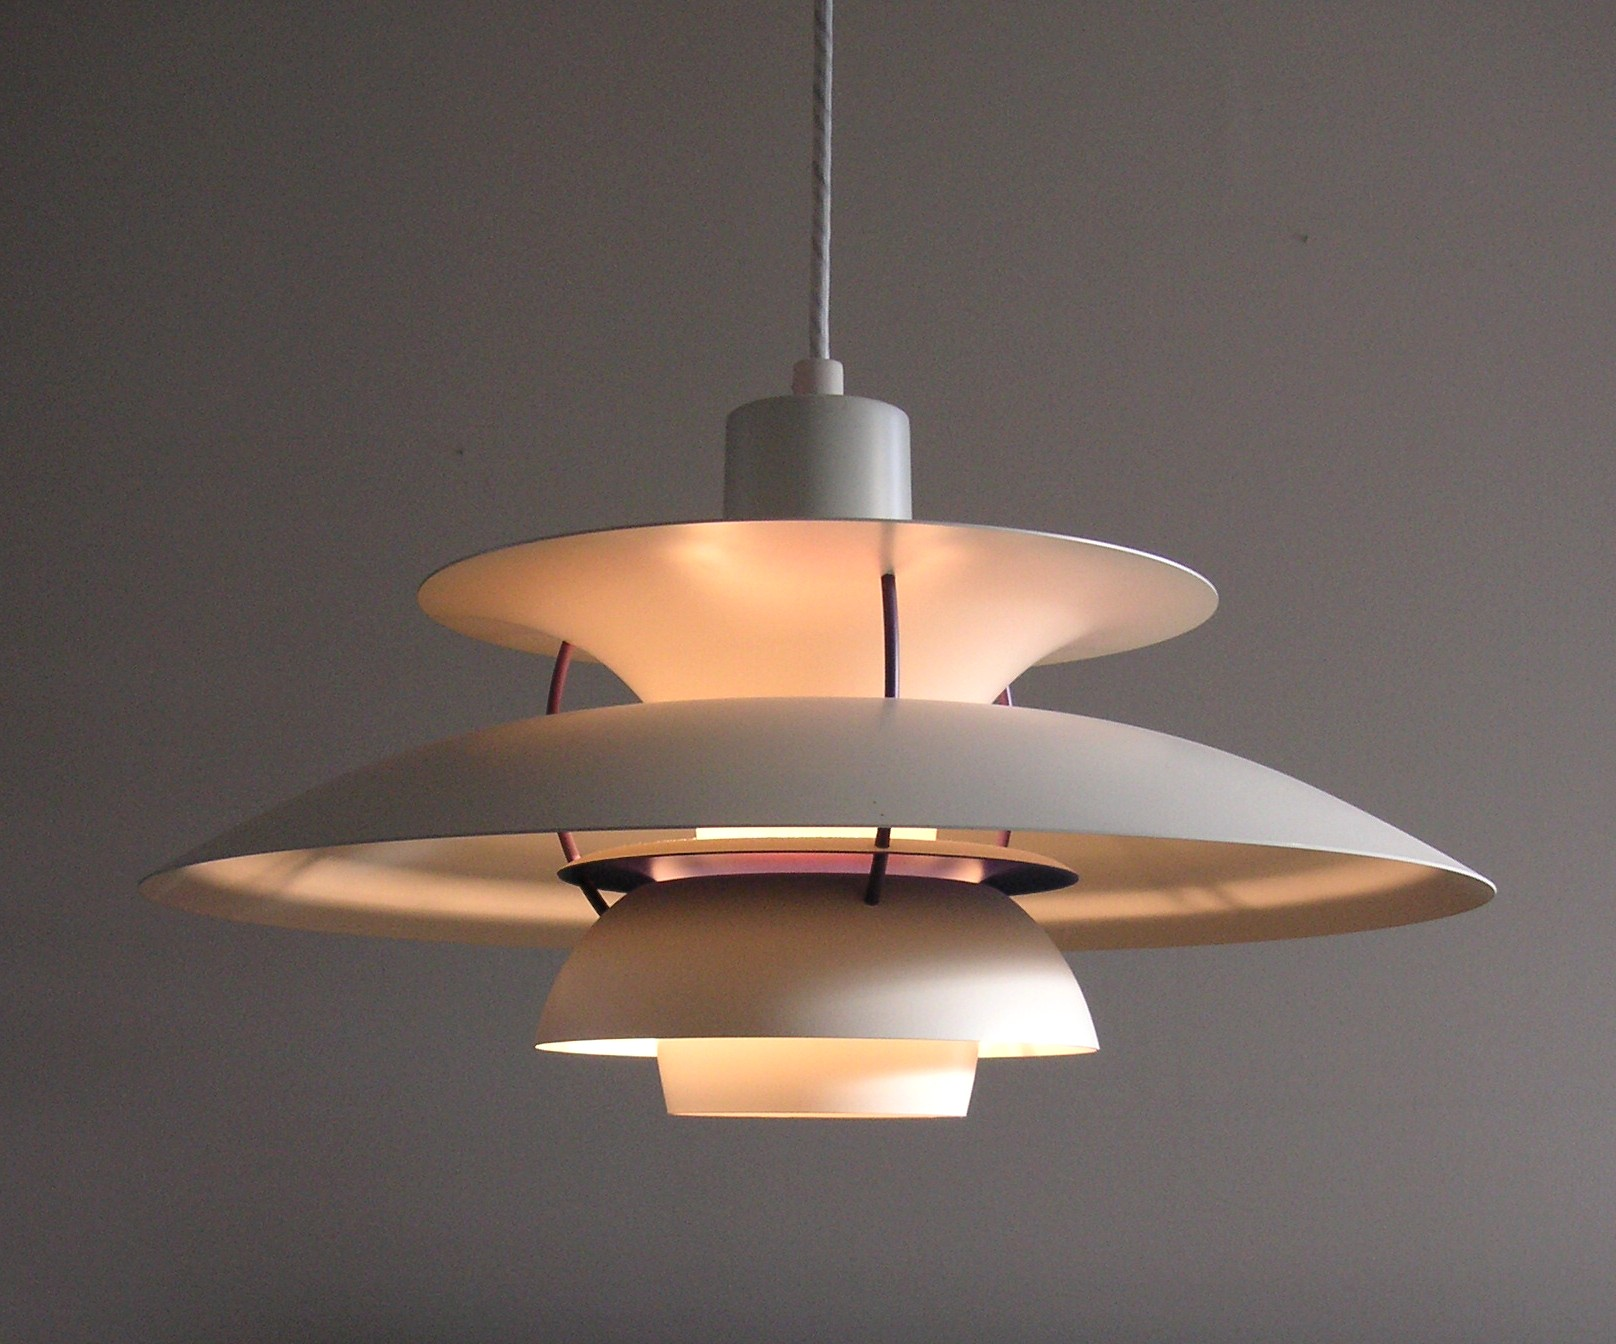 Designer Lampe Design Of Light | Memento